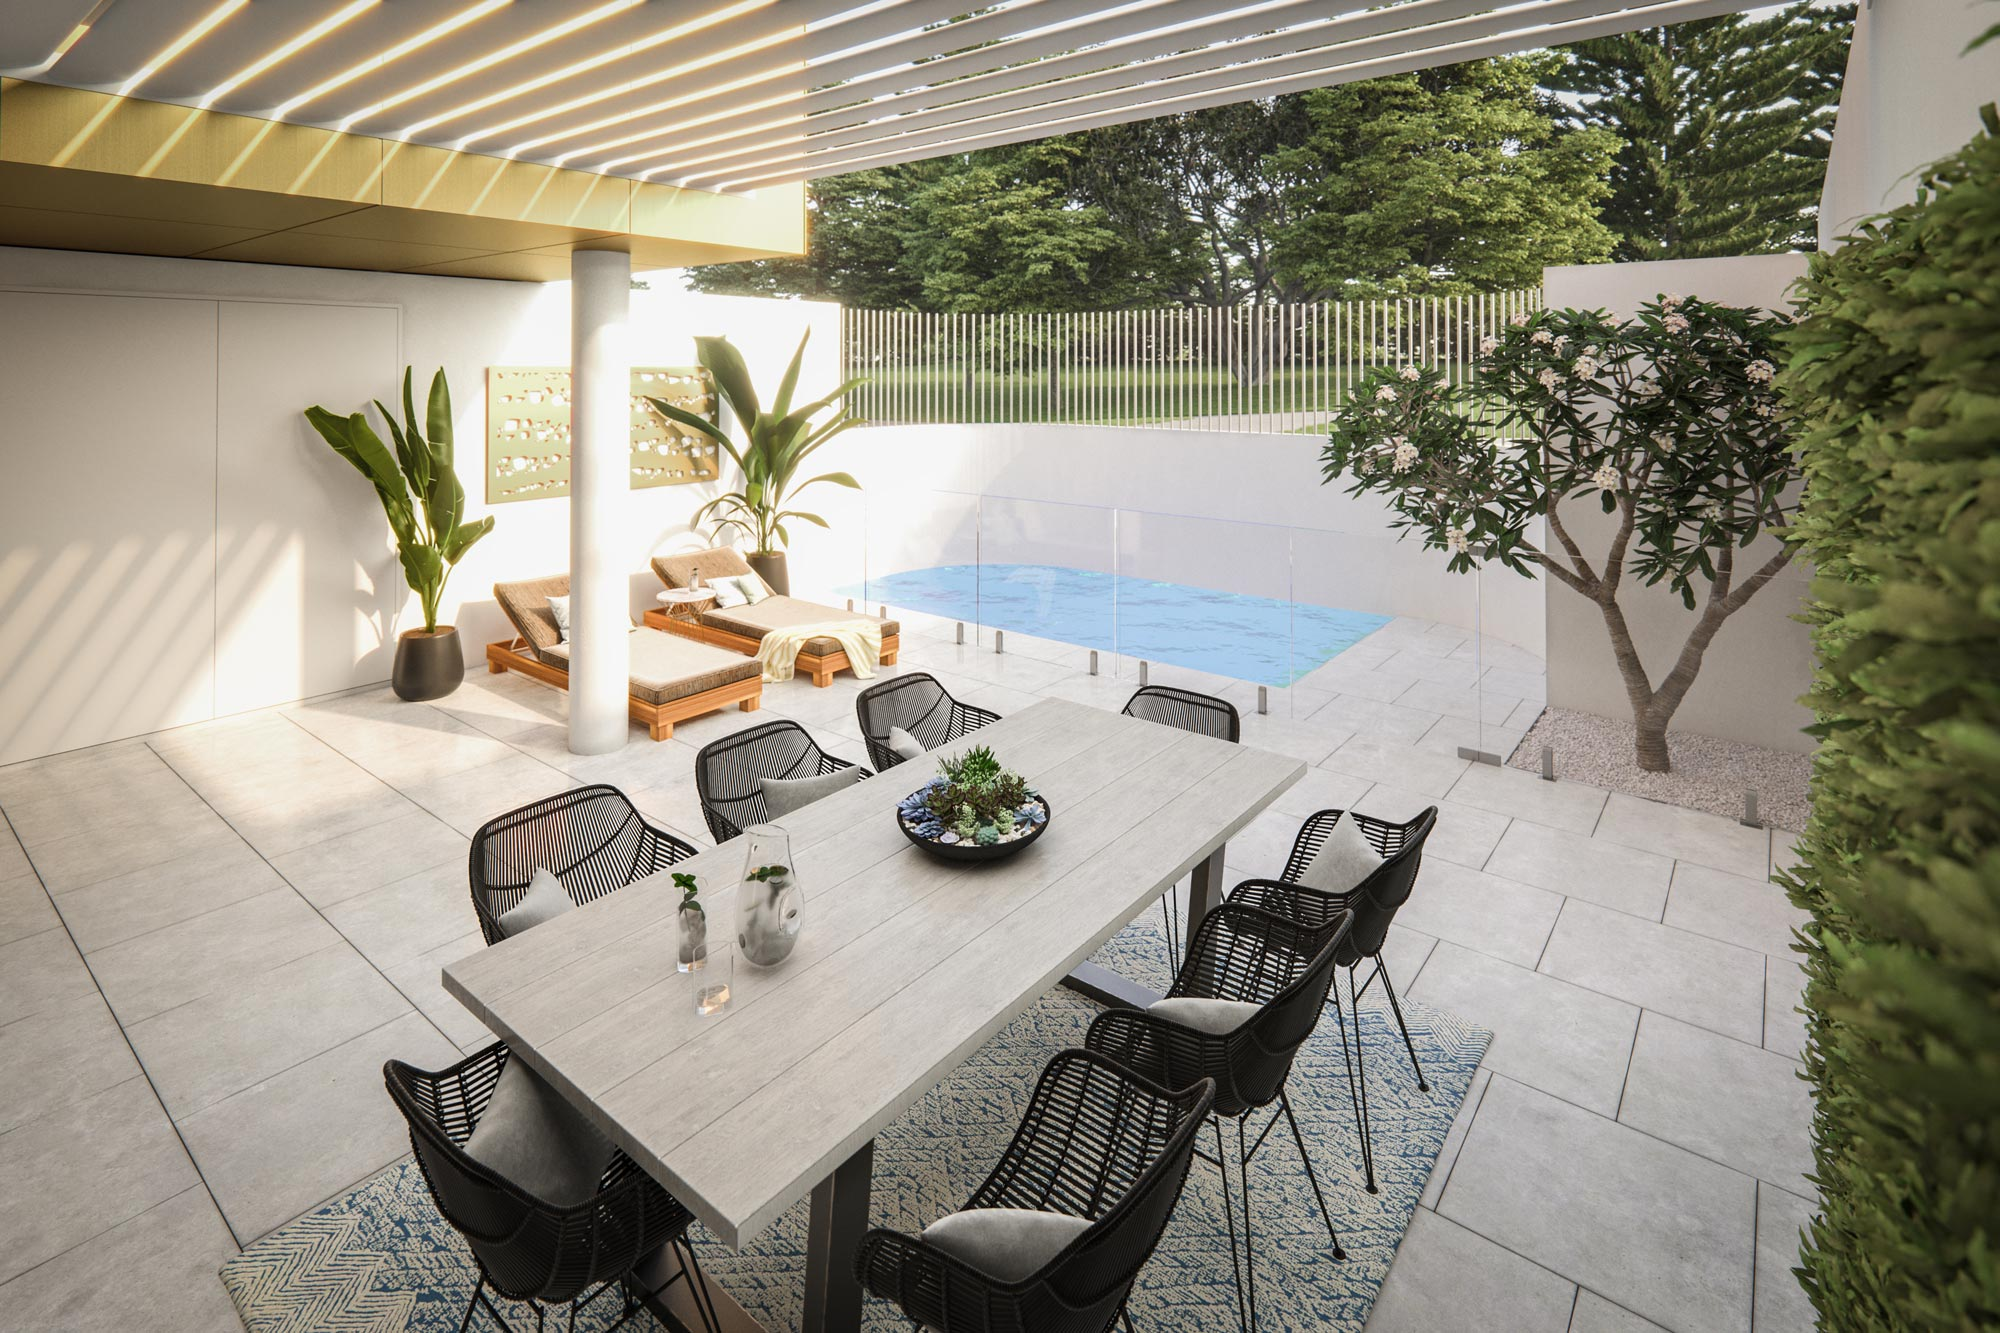 Covered alfresco area with pool, dining table, paving and side garden at Elizabeth Residences Cottesloe Apartments